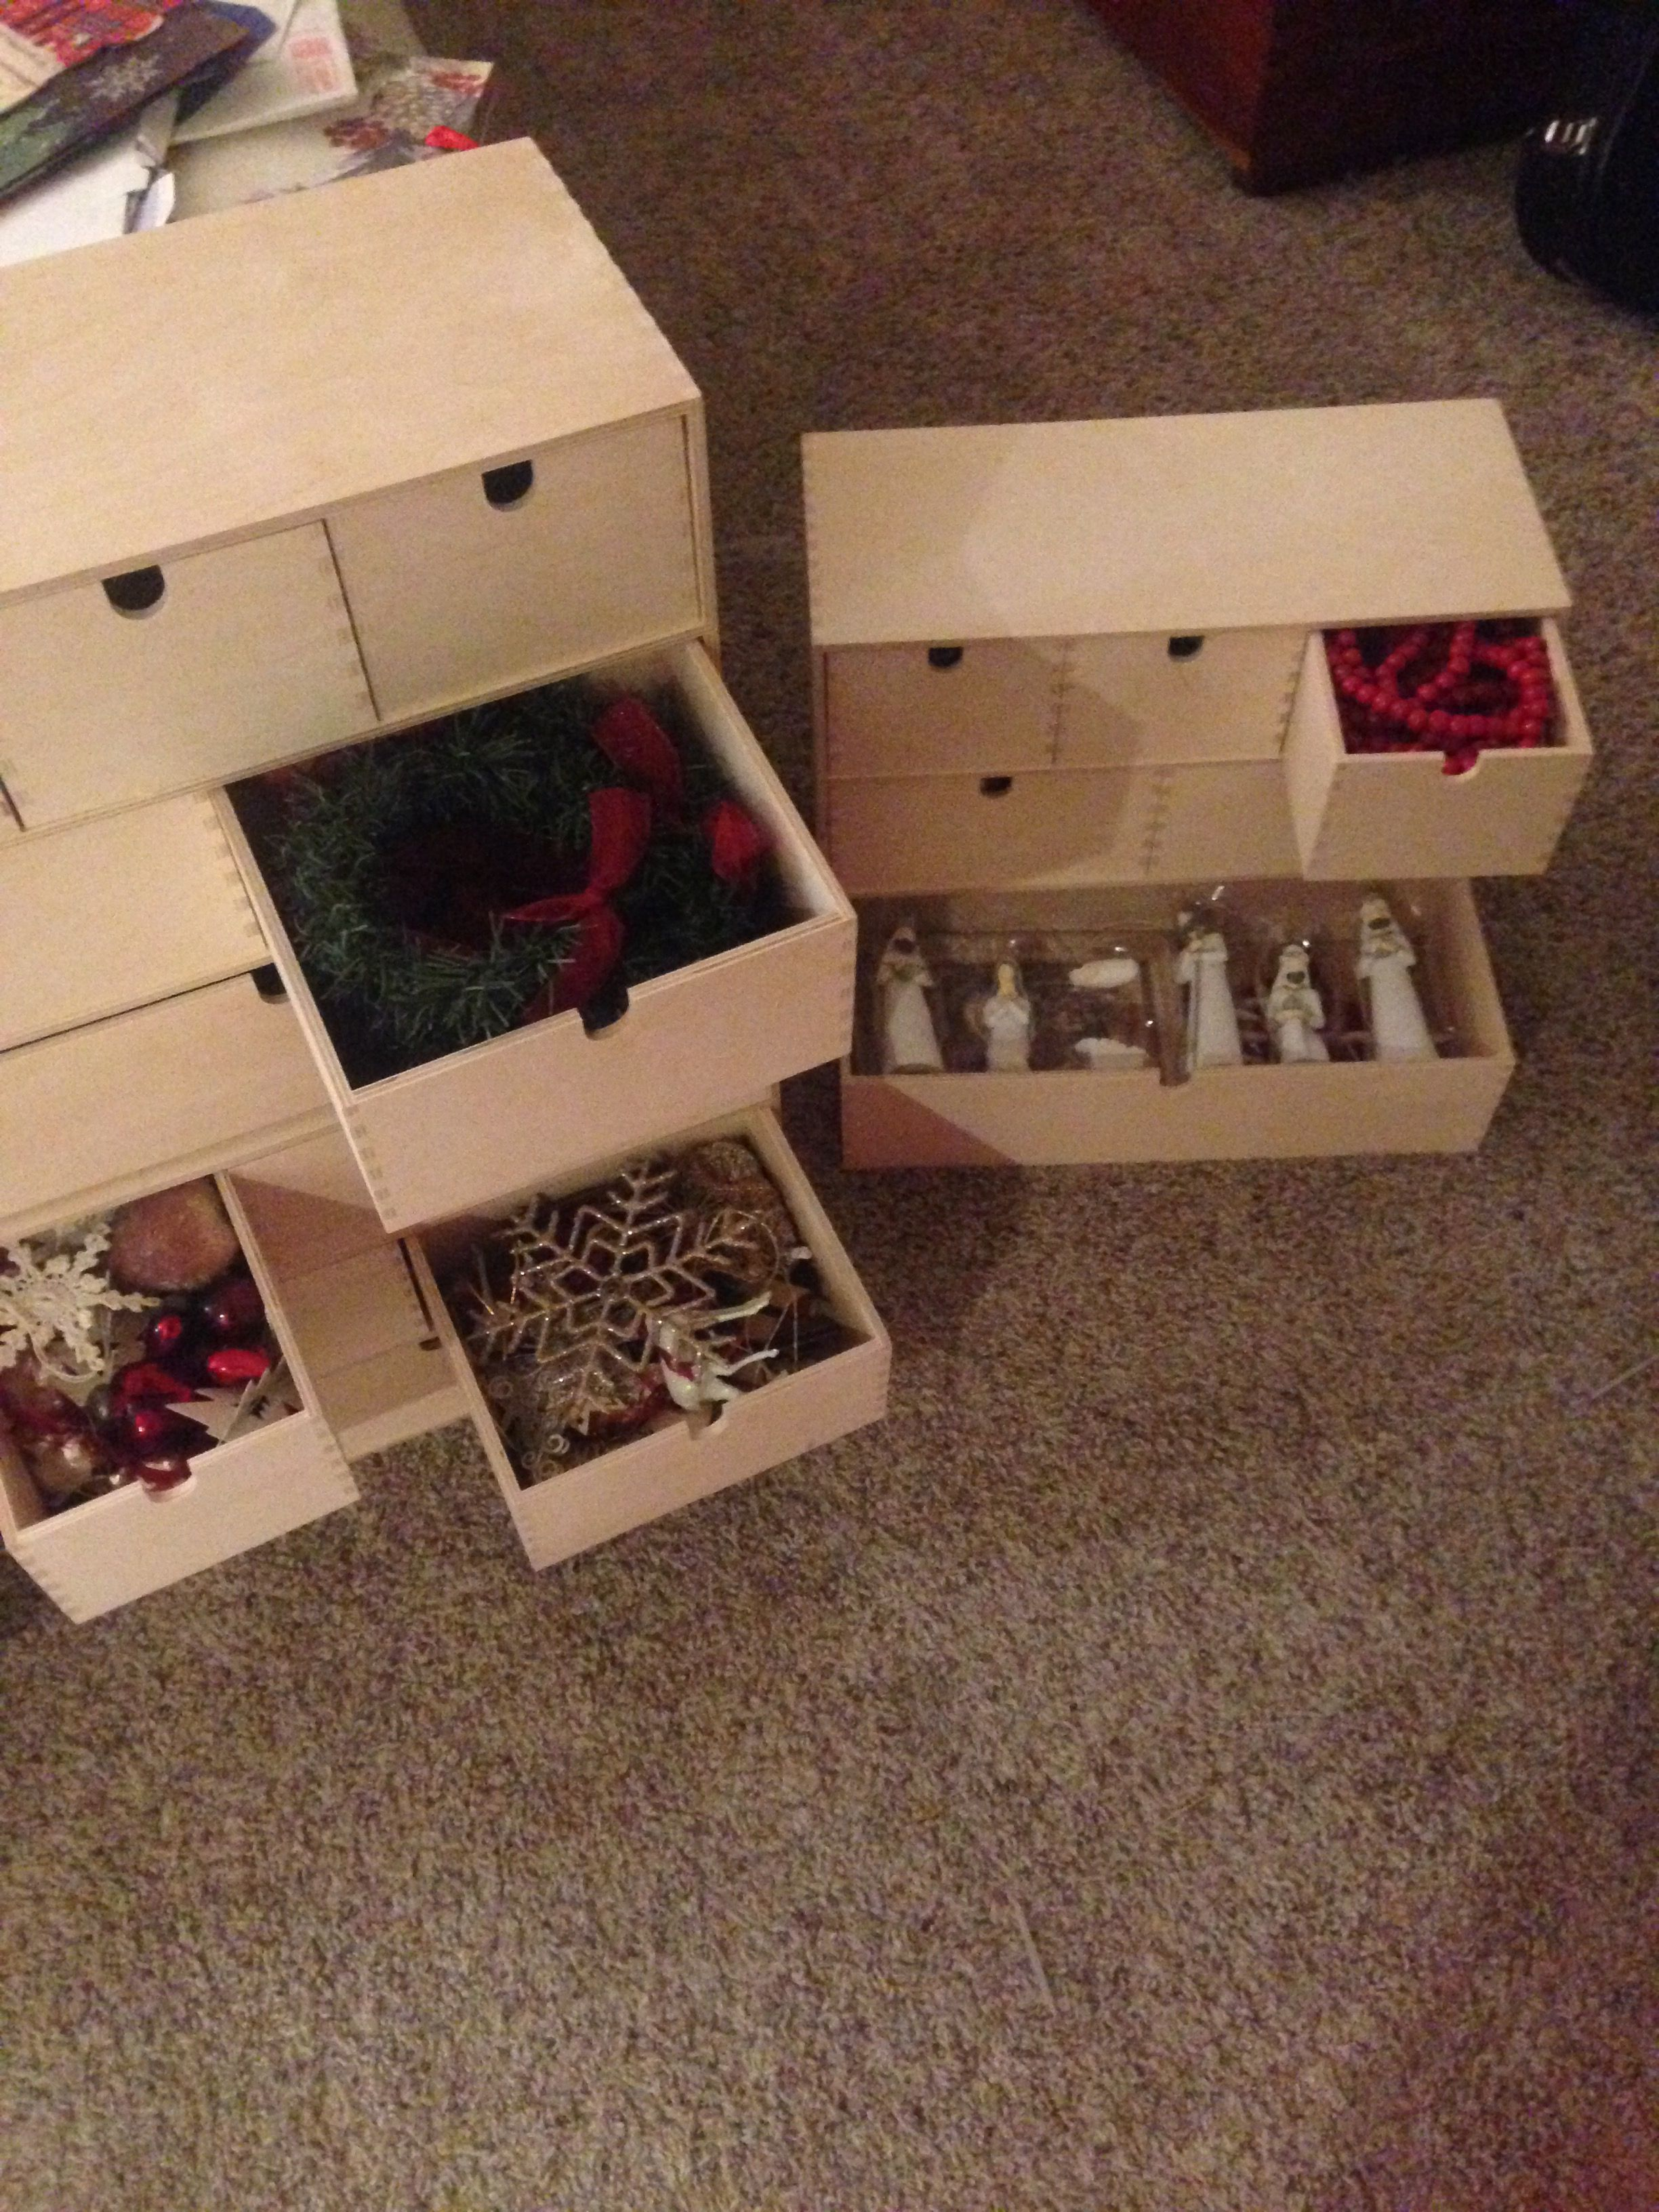 Ikea Small Storage For Christmas Ornaments Christmas Organization Small Storage Christmas